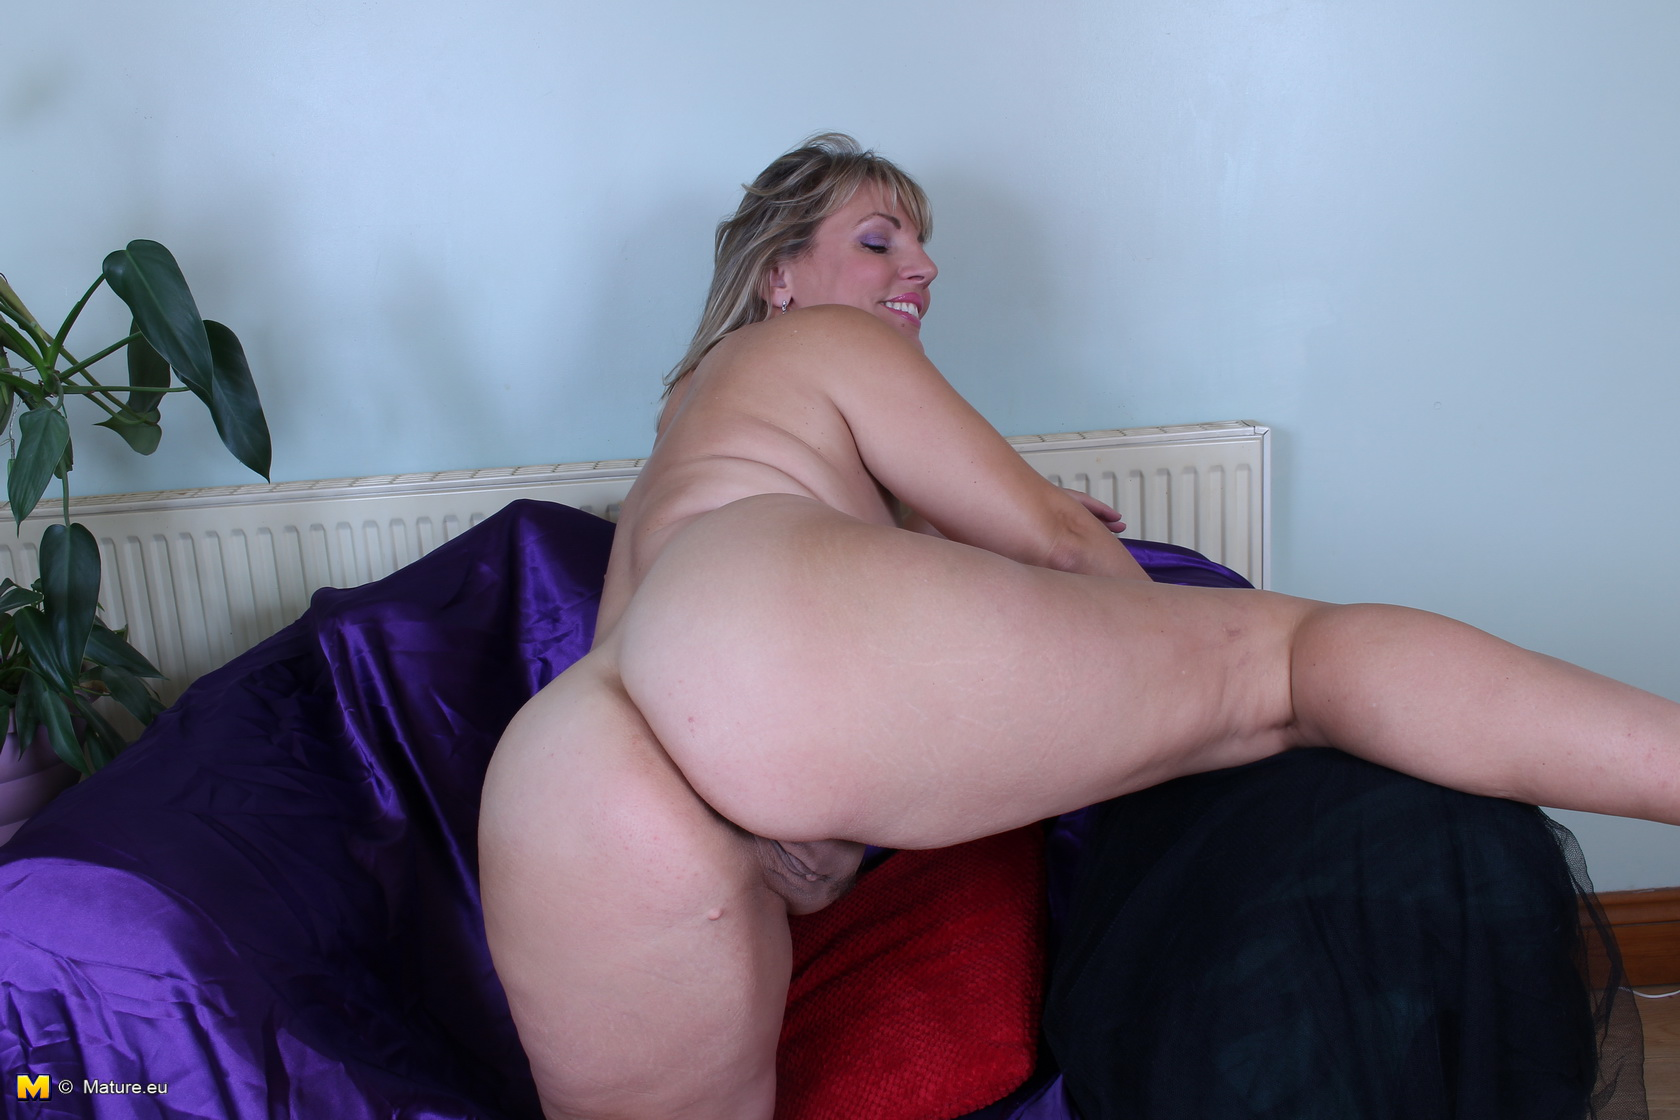 Cock free sucking video woman